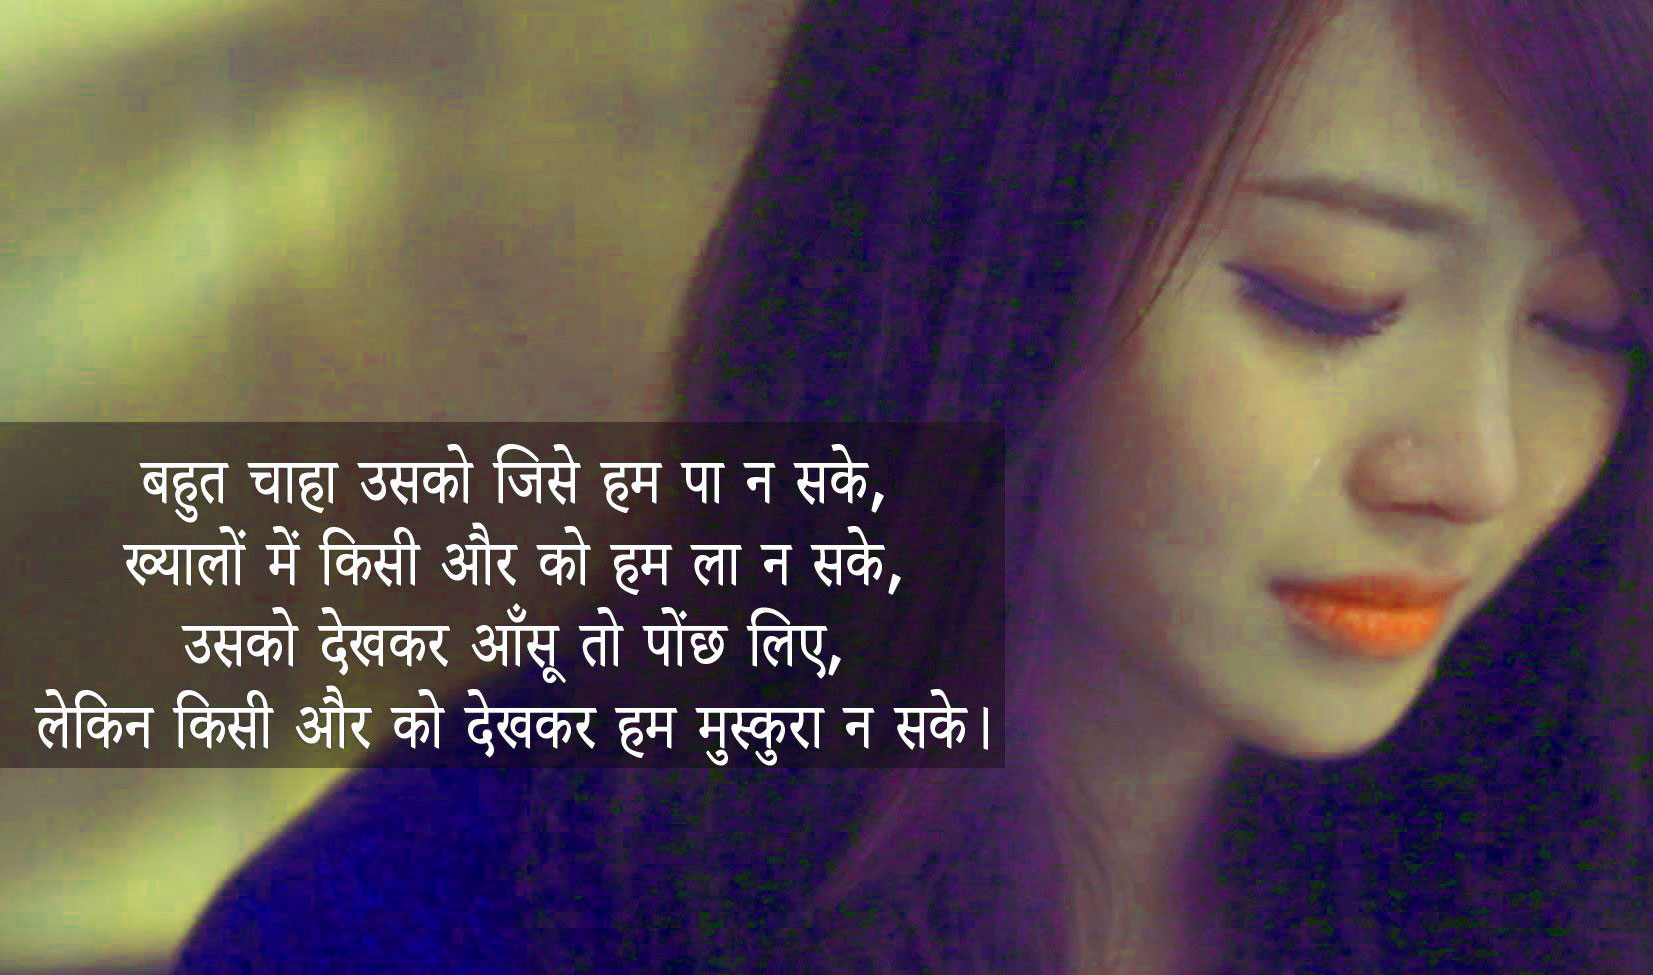 Hindi-Bewafa-Shayari-Images-23